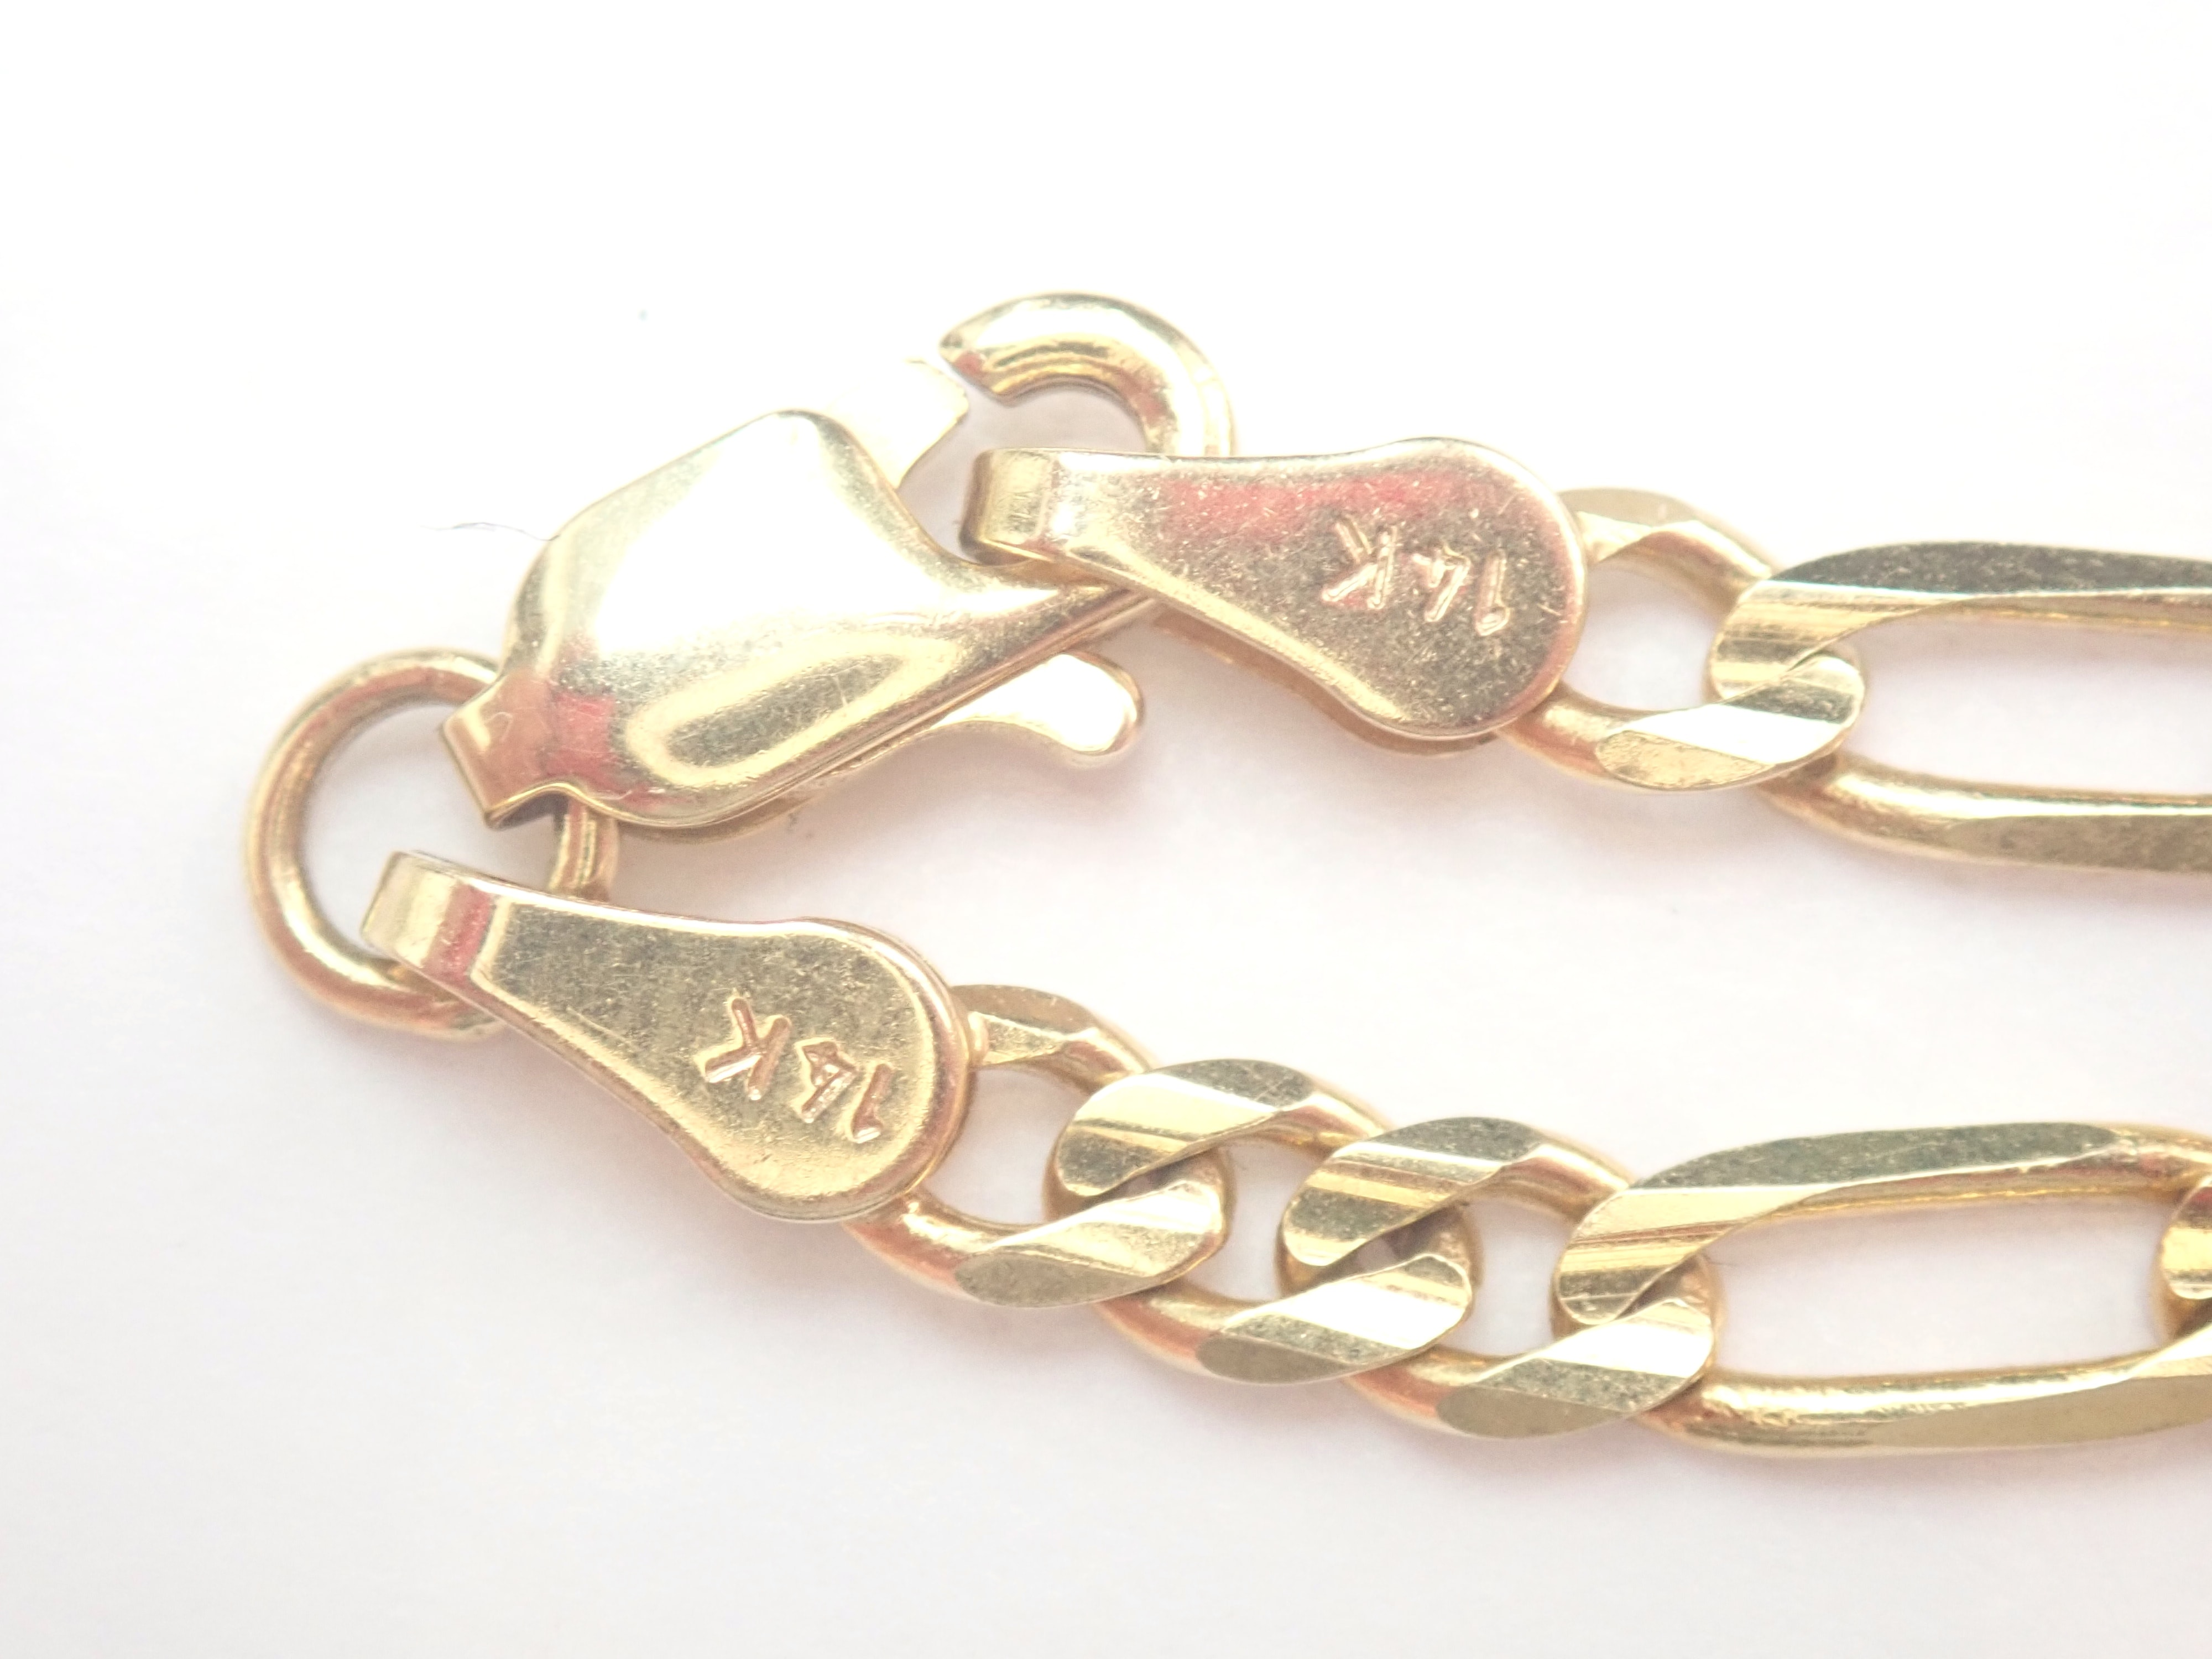 """AZZ00799 1 - 14ct Yellow Gold Figaro Linked Chain with Lobster Claw Clasp 22"""" - 12.7gms #320"""